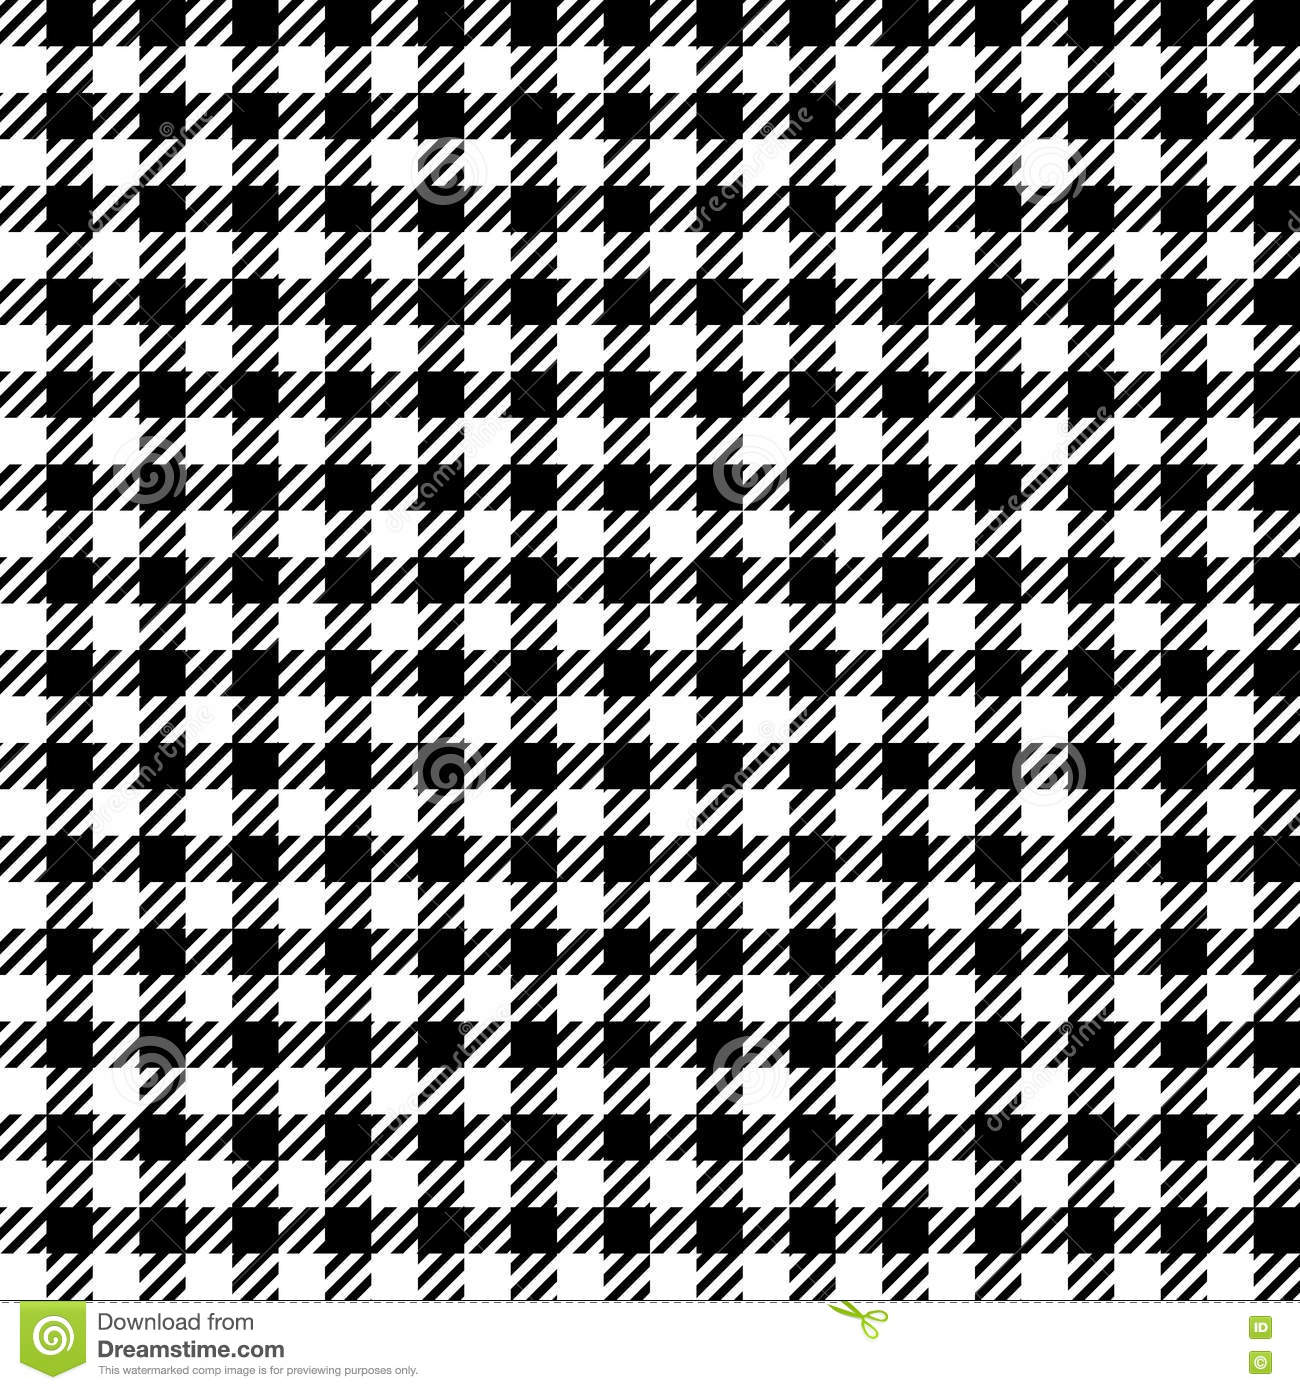 Seamless black and white checkered texture stock images image - Black Fabric Illustration Plaid Seamless Texture Vector White